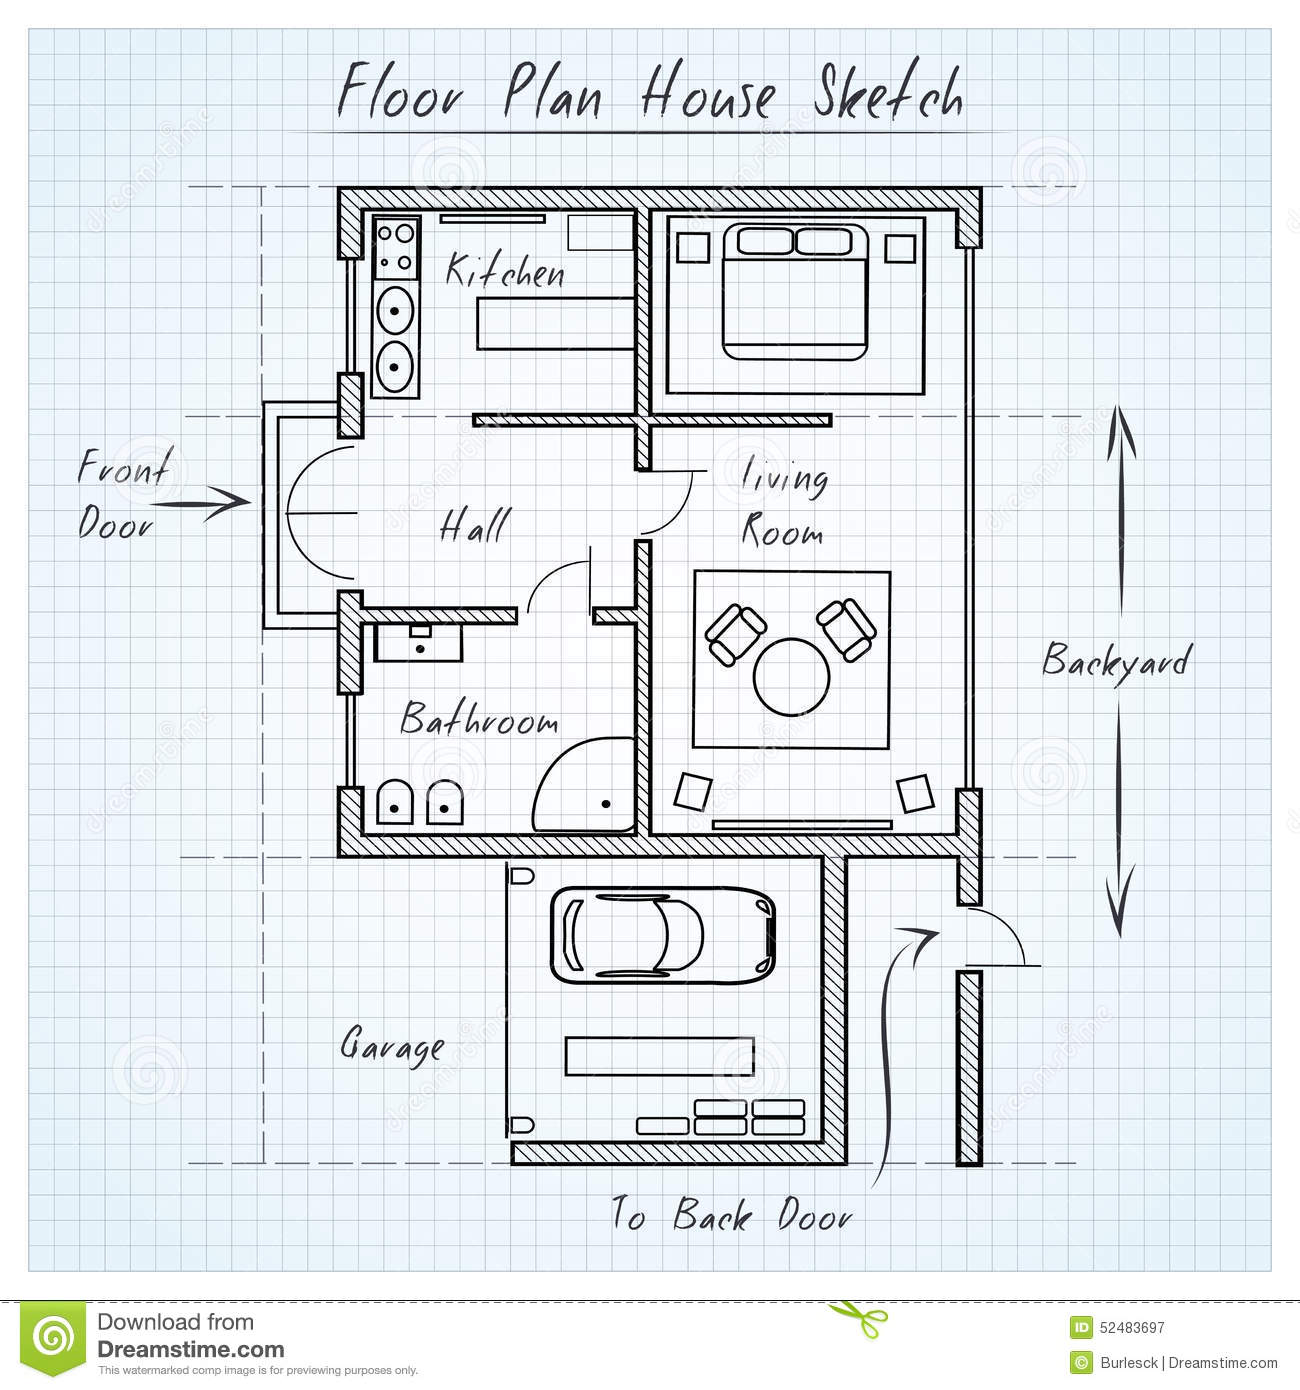 ^ House plan sketch zionstar.net.com - Find the best images of ...